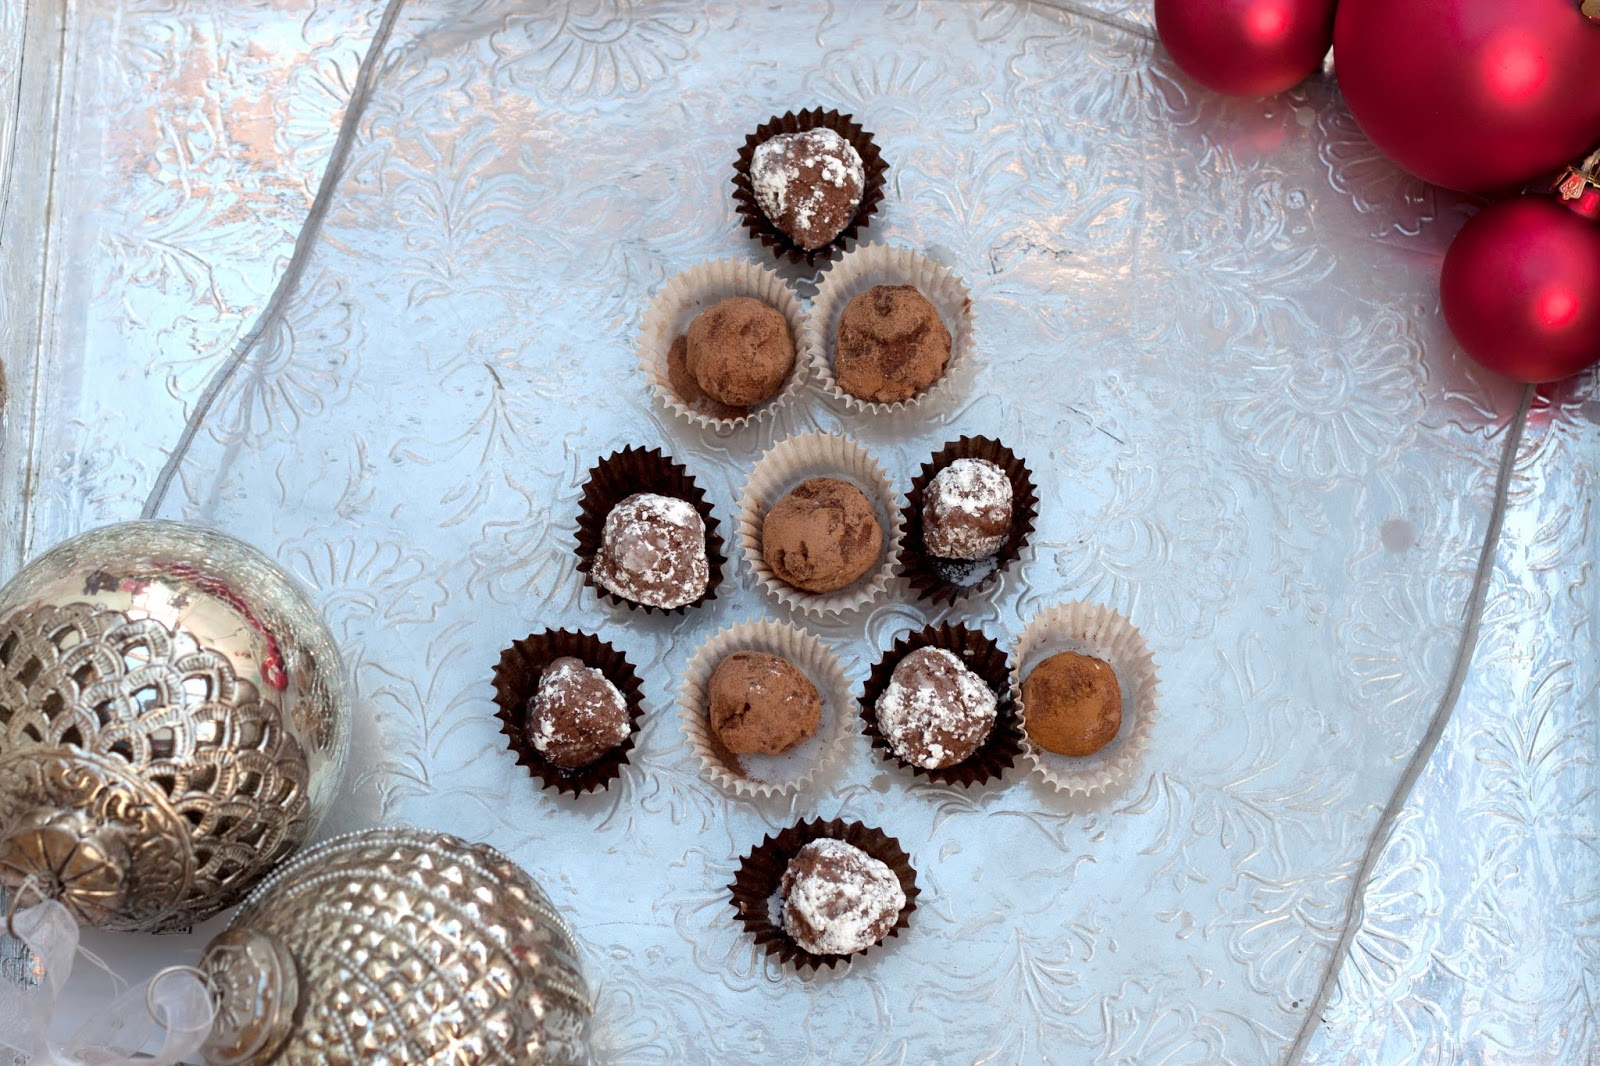 FOOD: RAW CHOCOLATE TRUFFLES